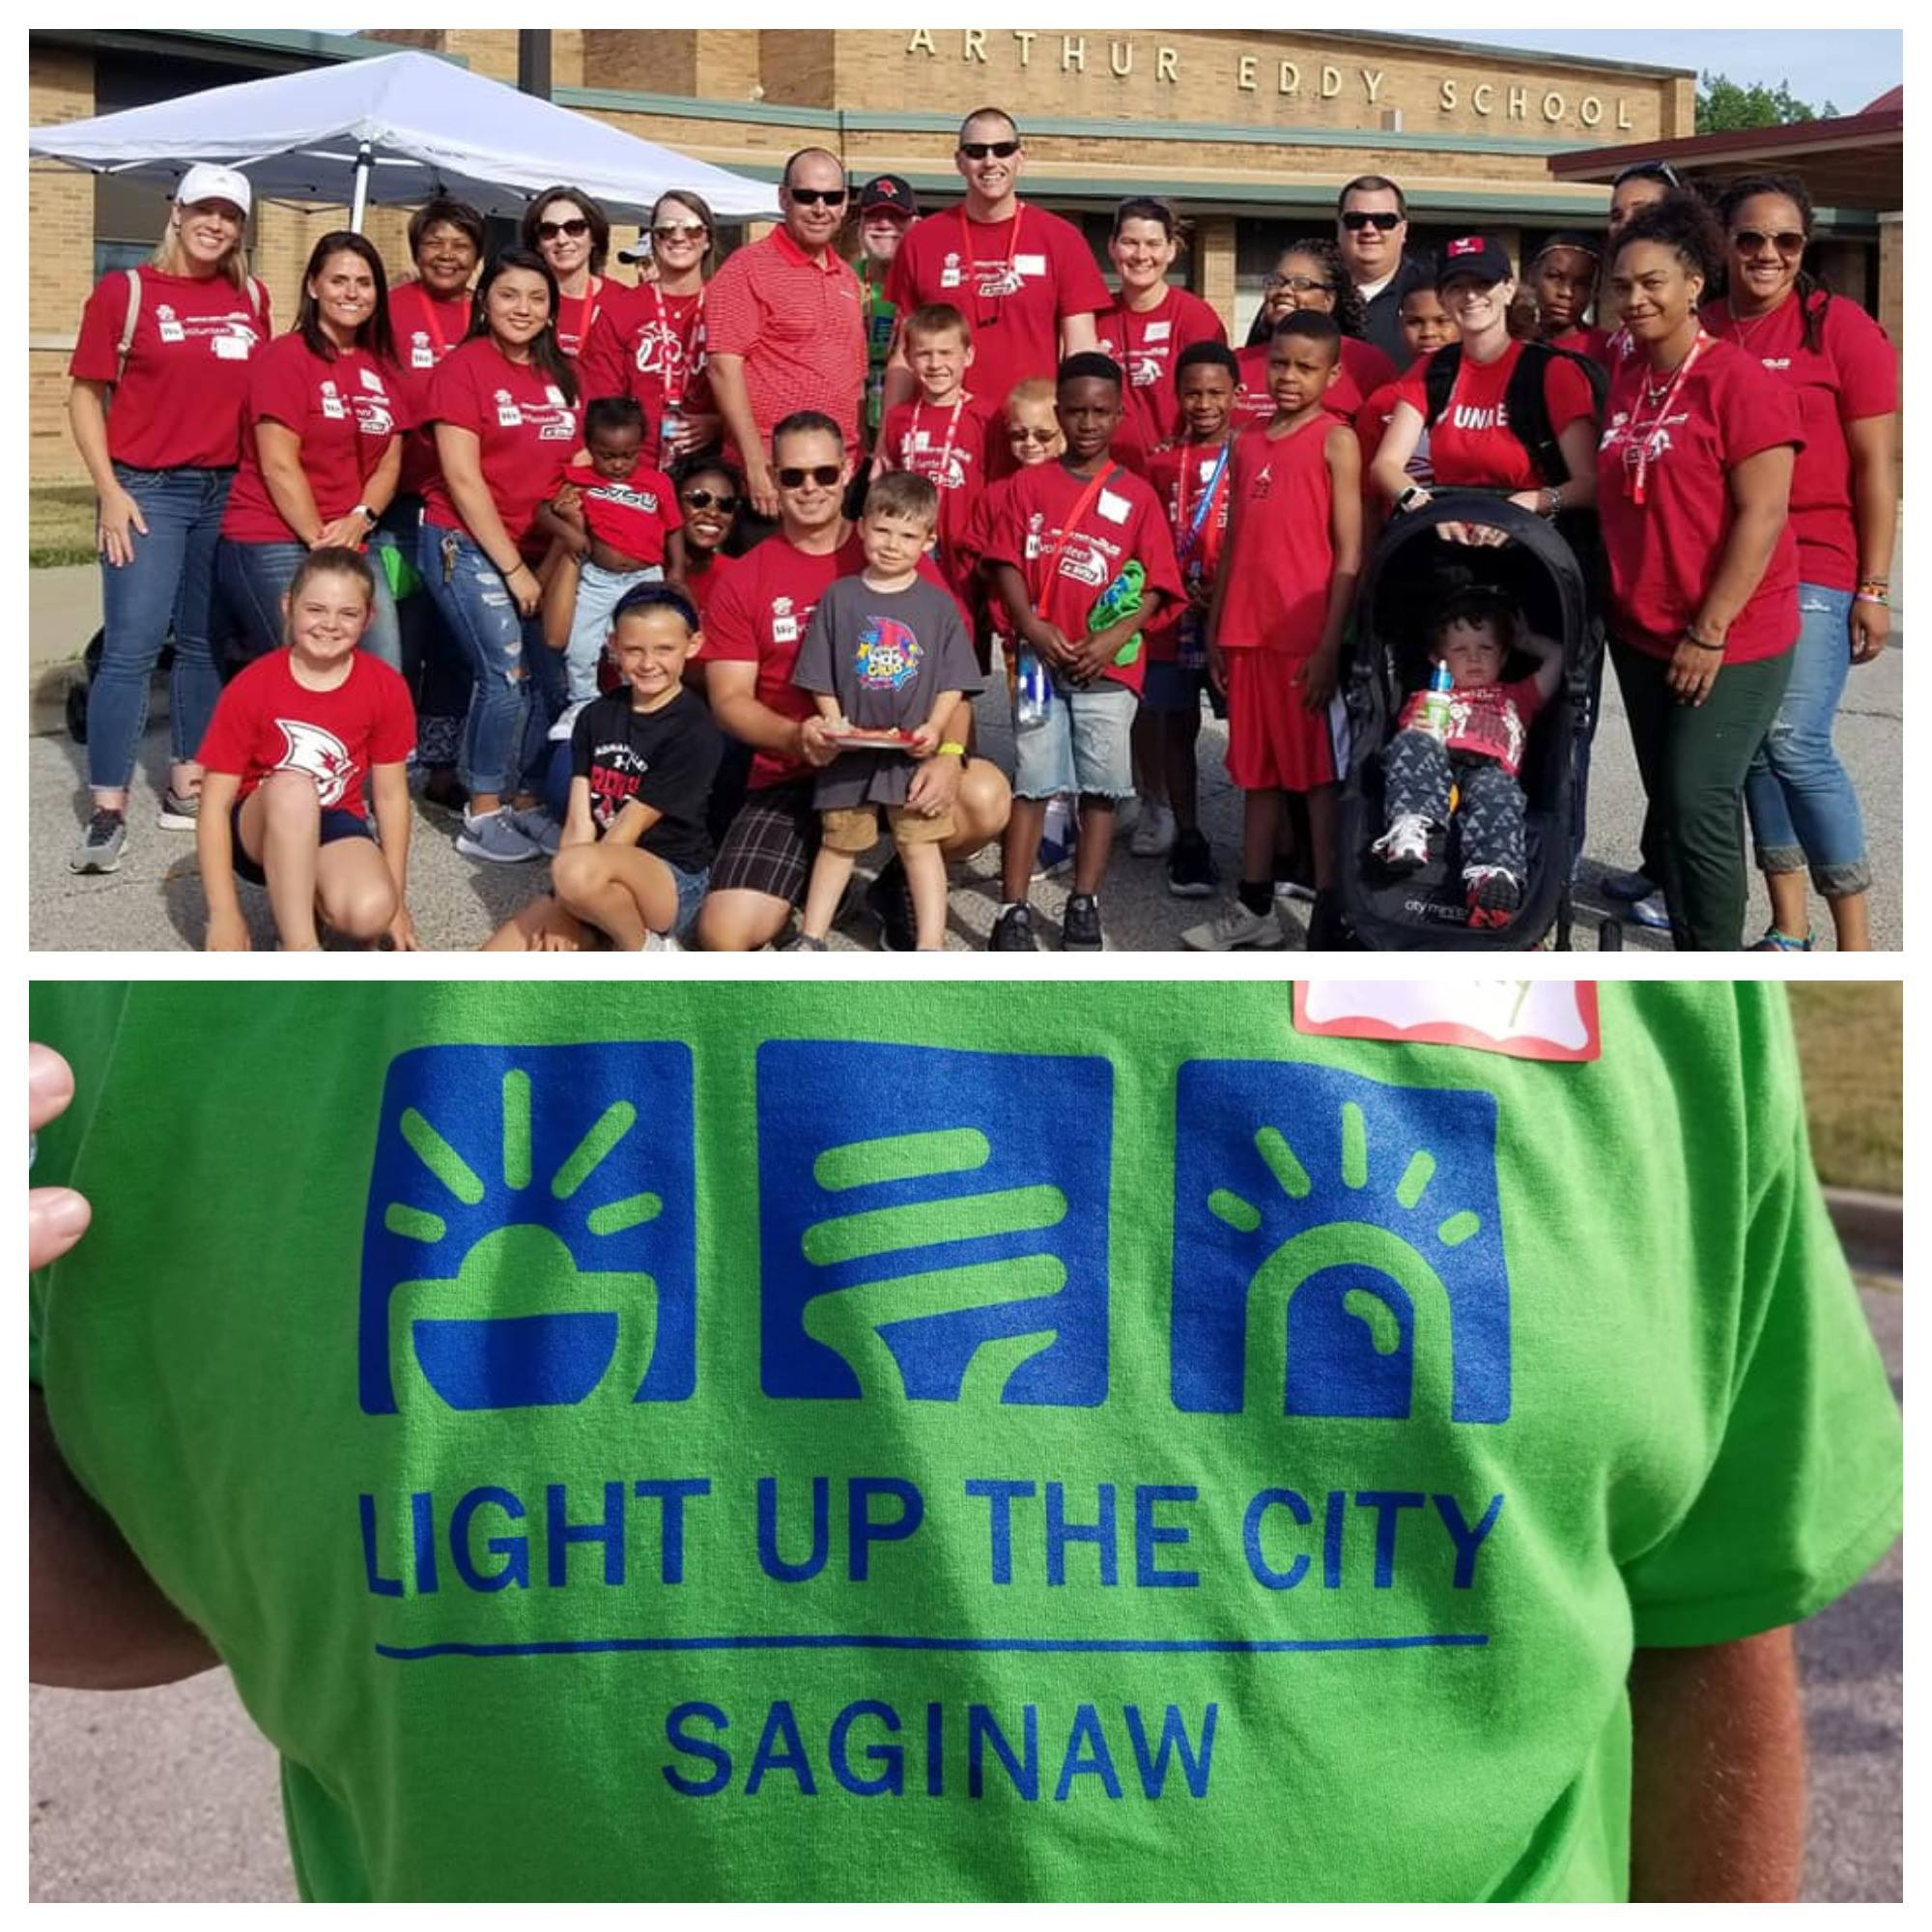 SVSU students, employees and their families who walked in the Light up the City event.